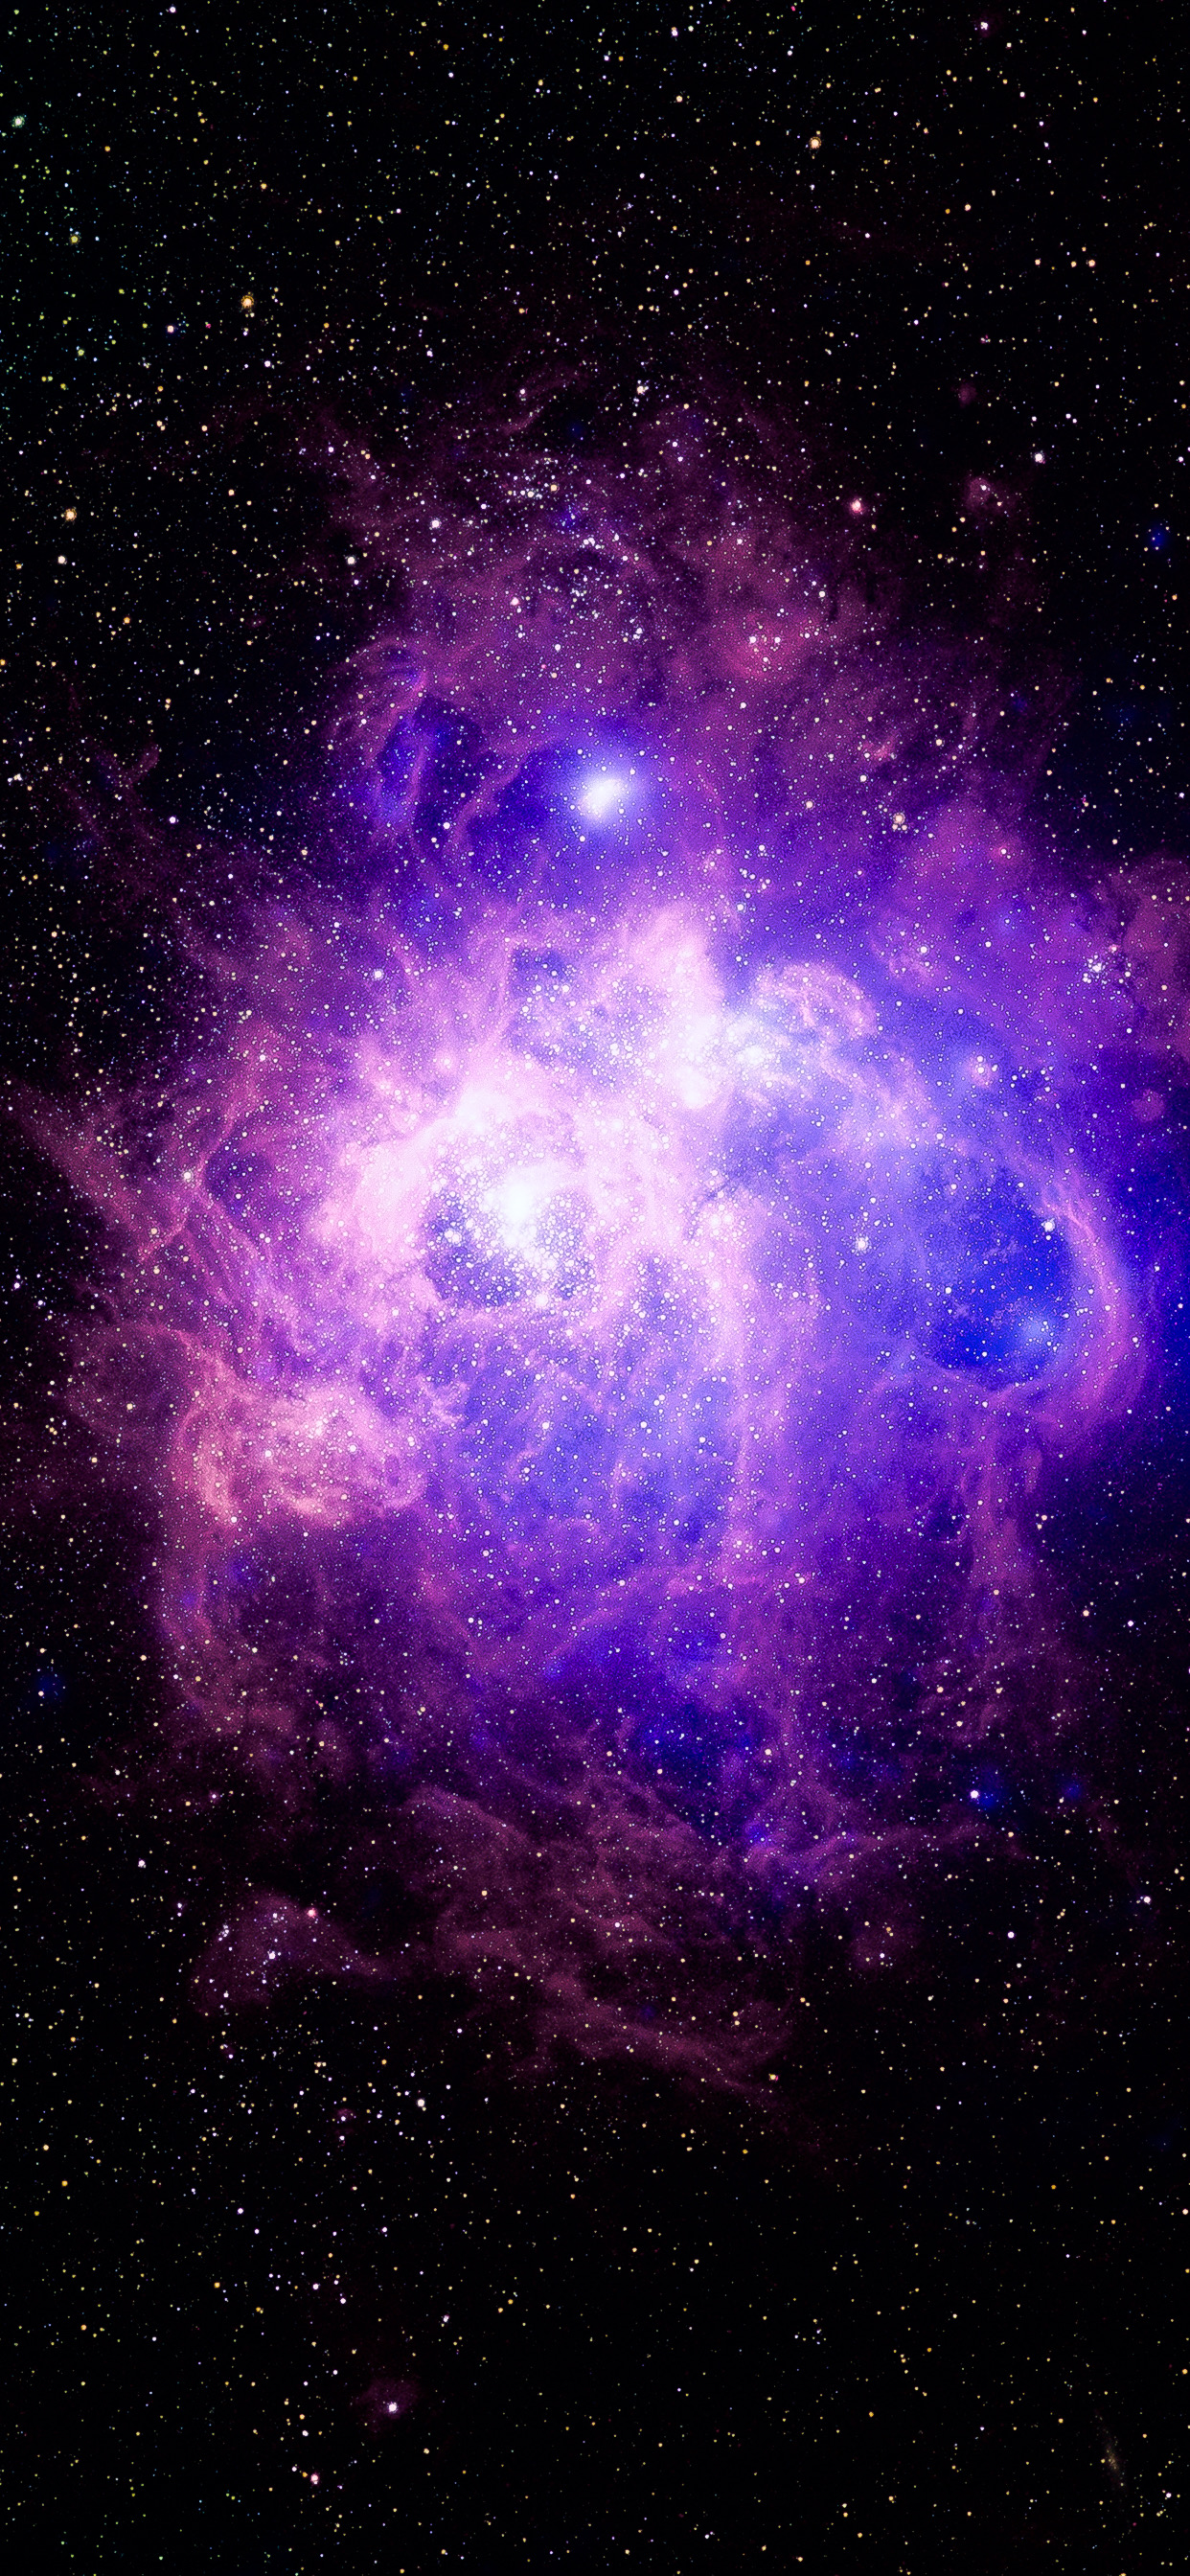 galaxy wallpaper iPhone chandra ar72014 3